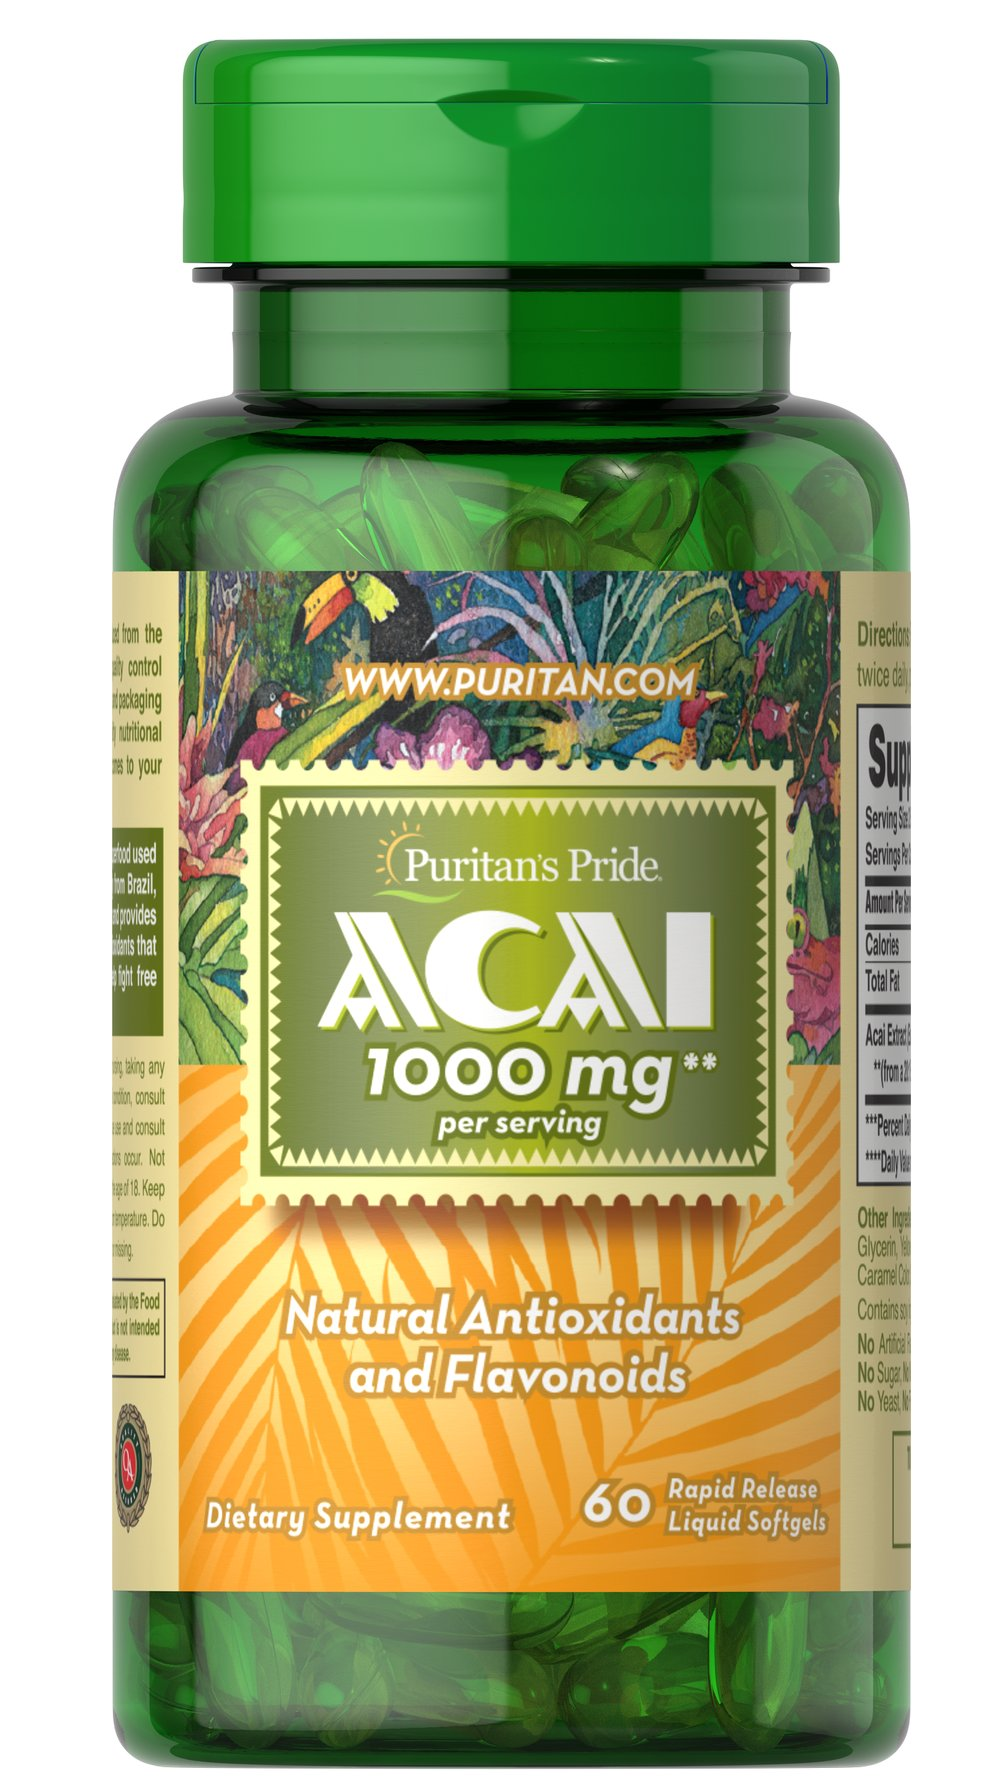 Acai 1000 mg Rapid-release liquid softgels. <p></p>Contains 1000 mg Acai per serving (two softgels).<p></p>Contains natural flavonoids and antioxidants<p></p>Supports overall well-being**<p></p>Helps enrich the vitality of your body and soul**<p></p> 60 Softgels 1000 mg $9.99